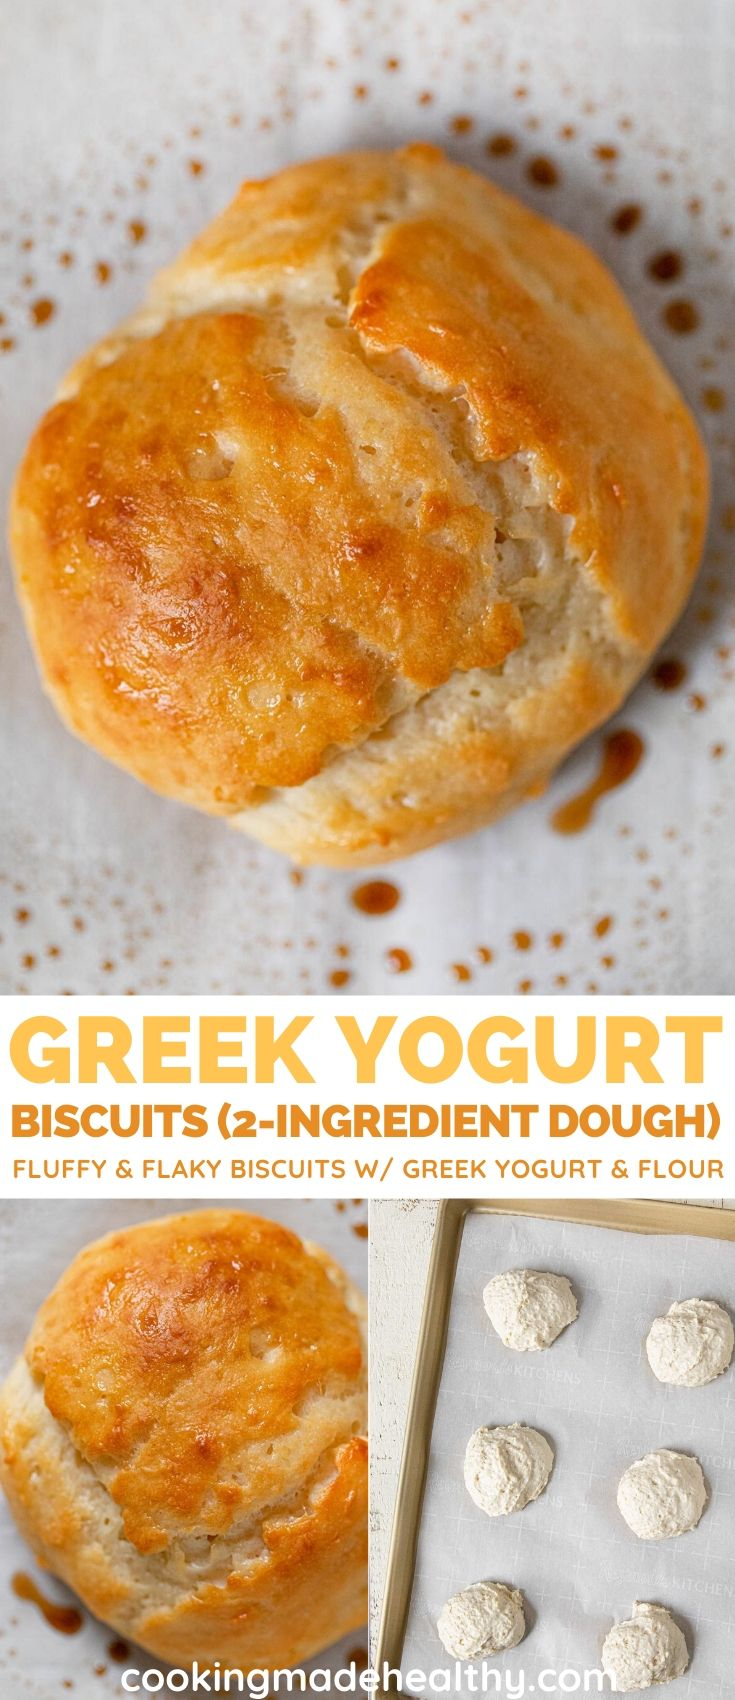 2-Ingredient Greek Yogurt Biscuits collage